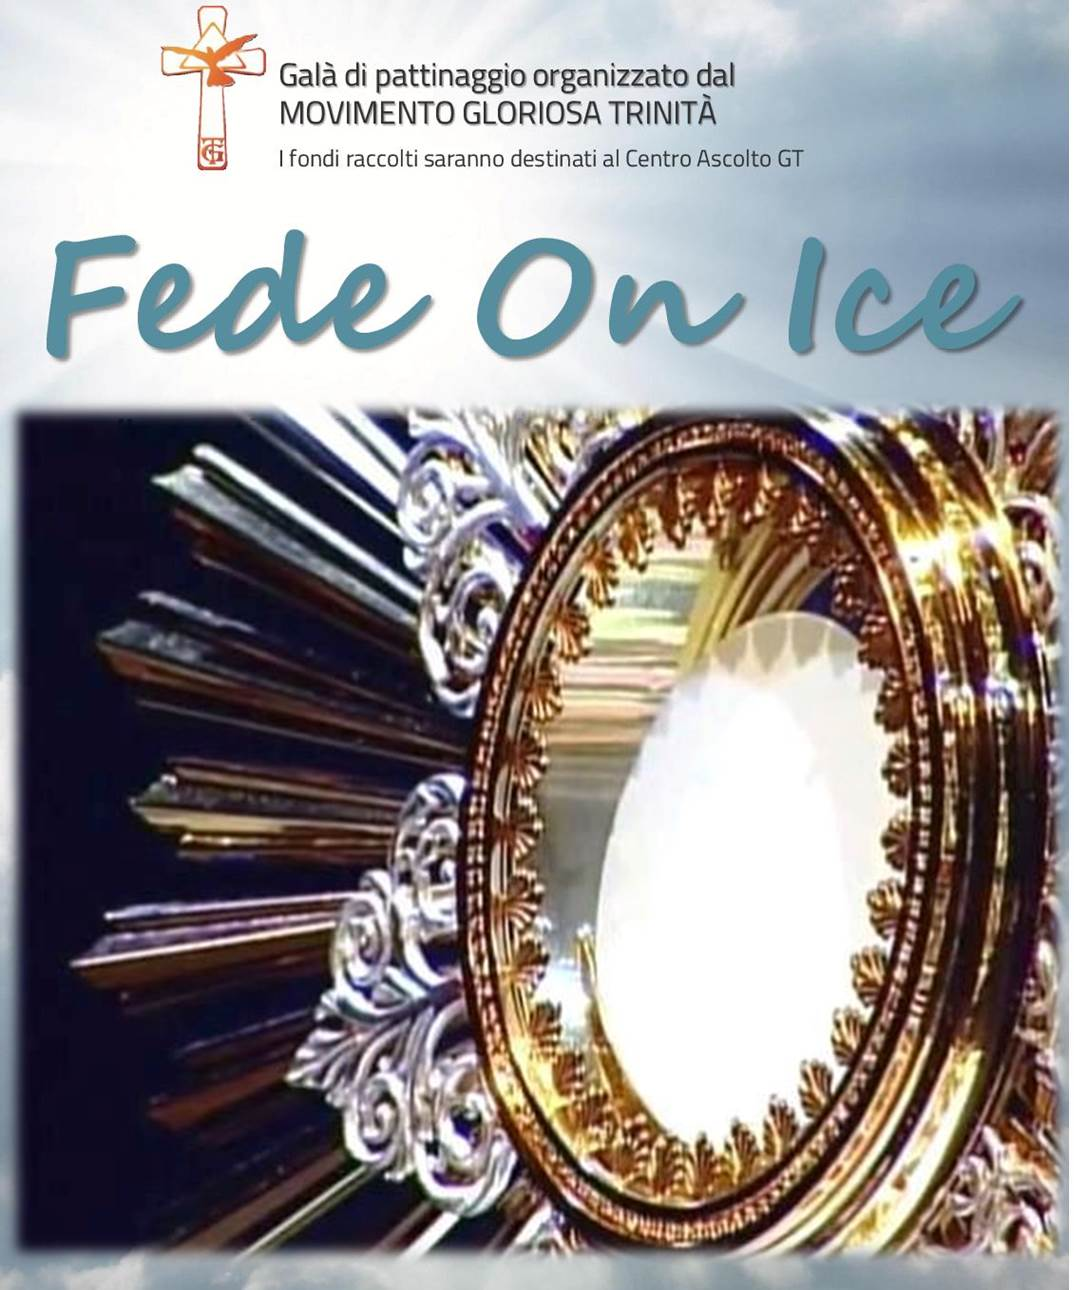 FEDE ON ICE: SERATA DI PREGHIERA PER L'EVENTO